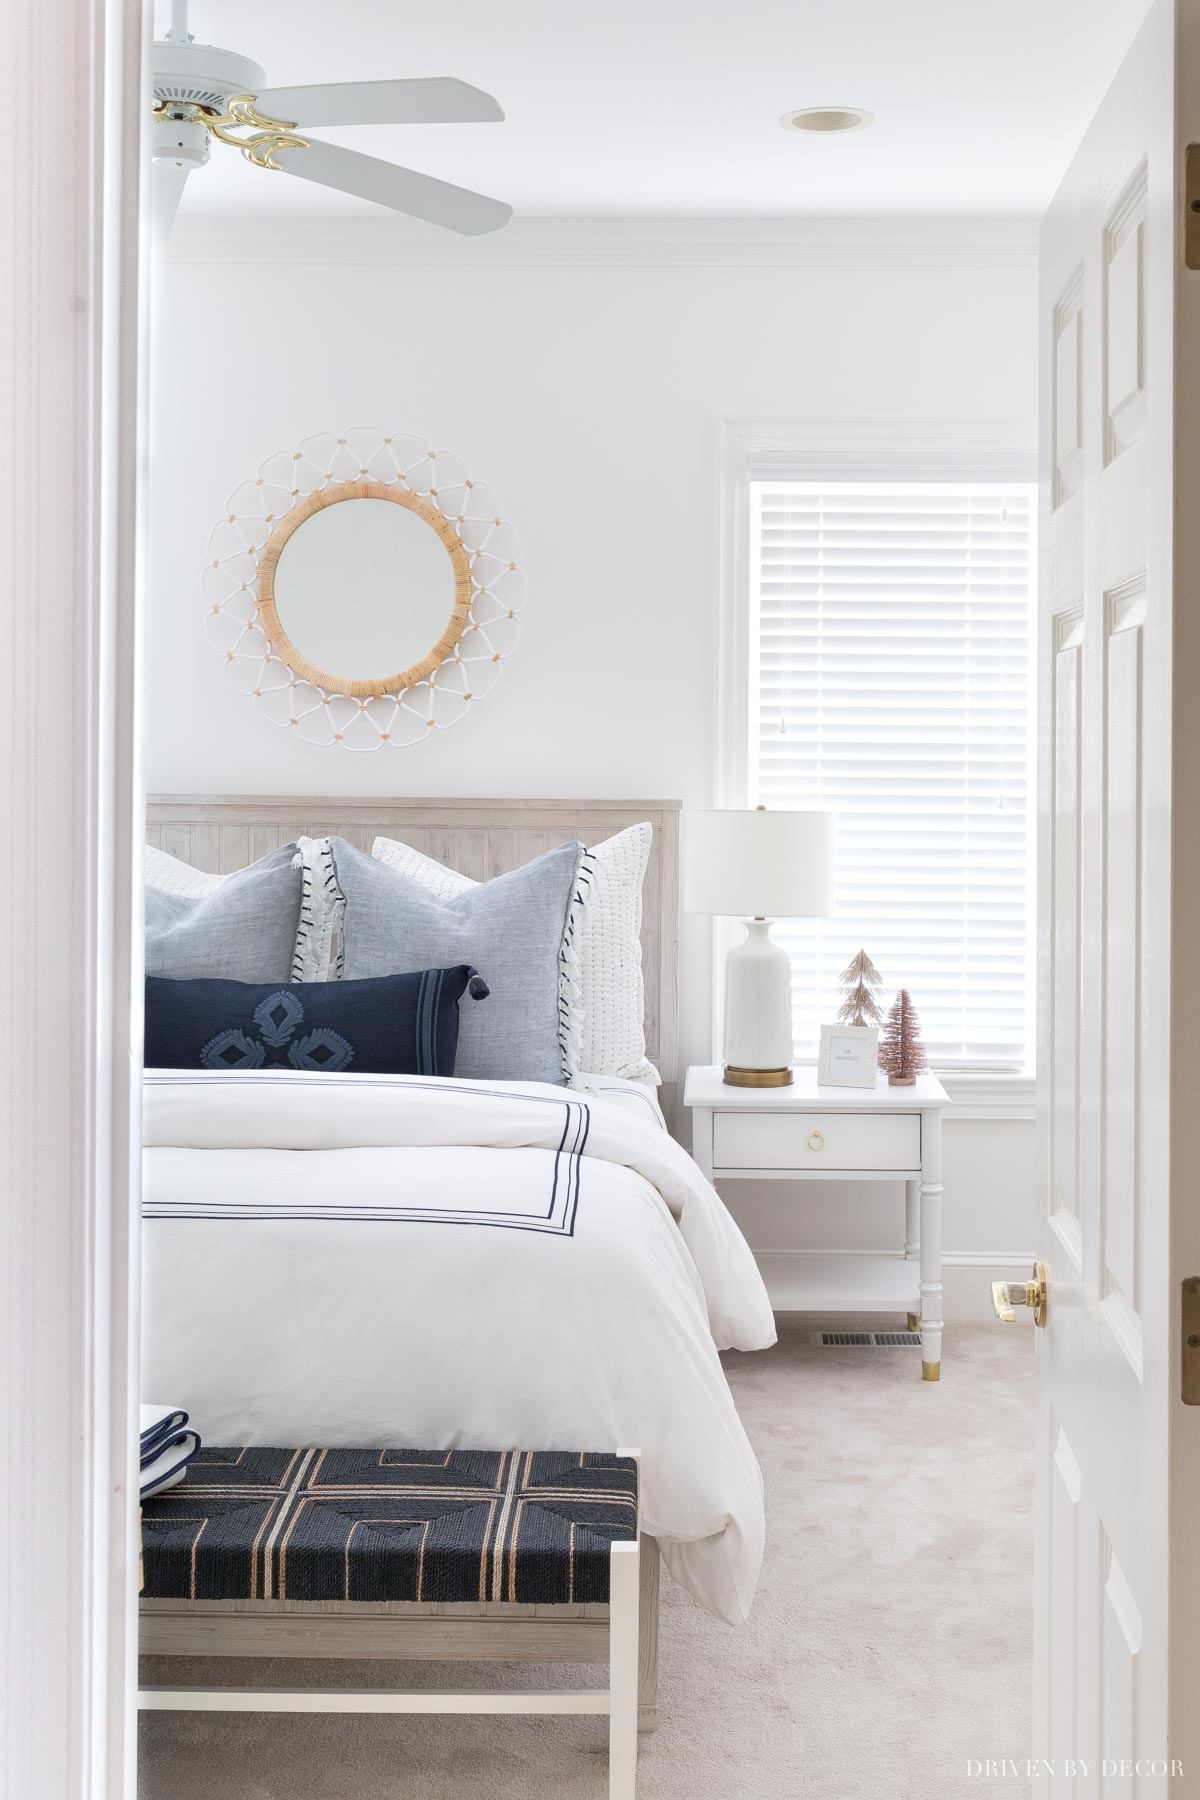 Tour our blue and white guest room and other rooms in our NC home!